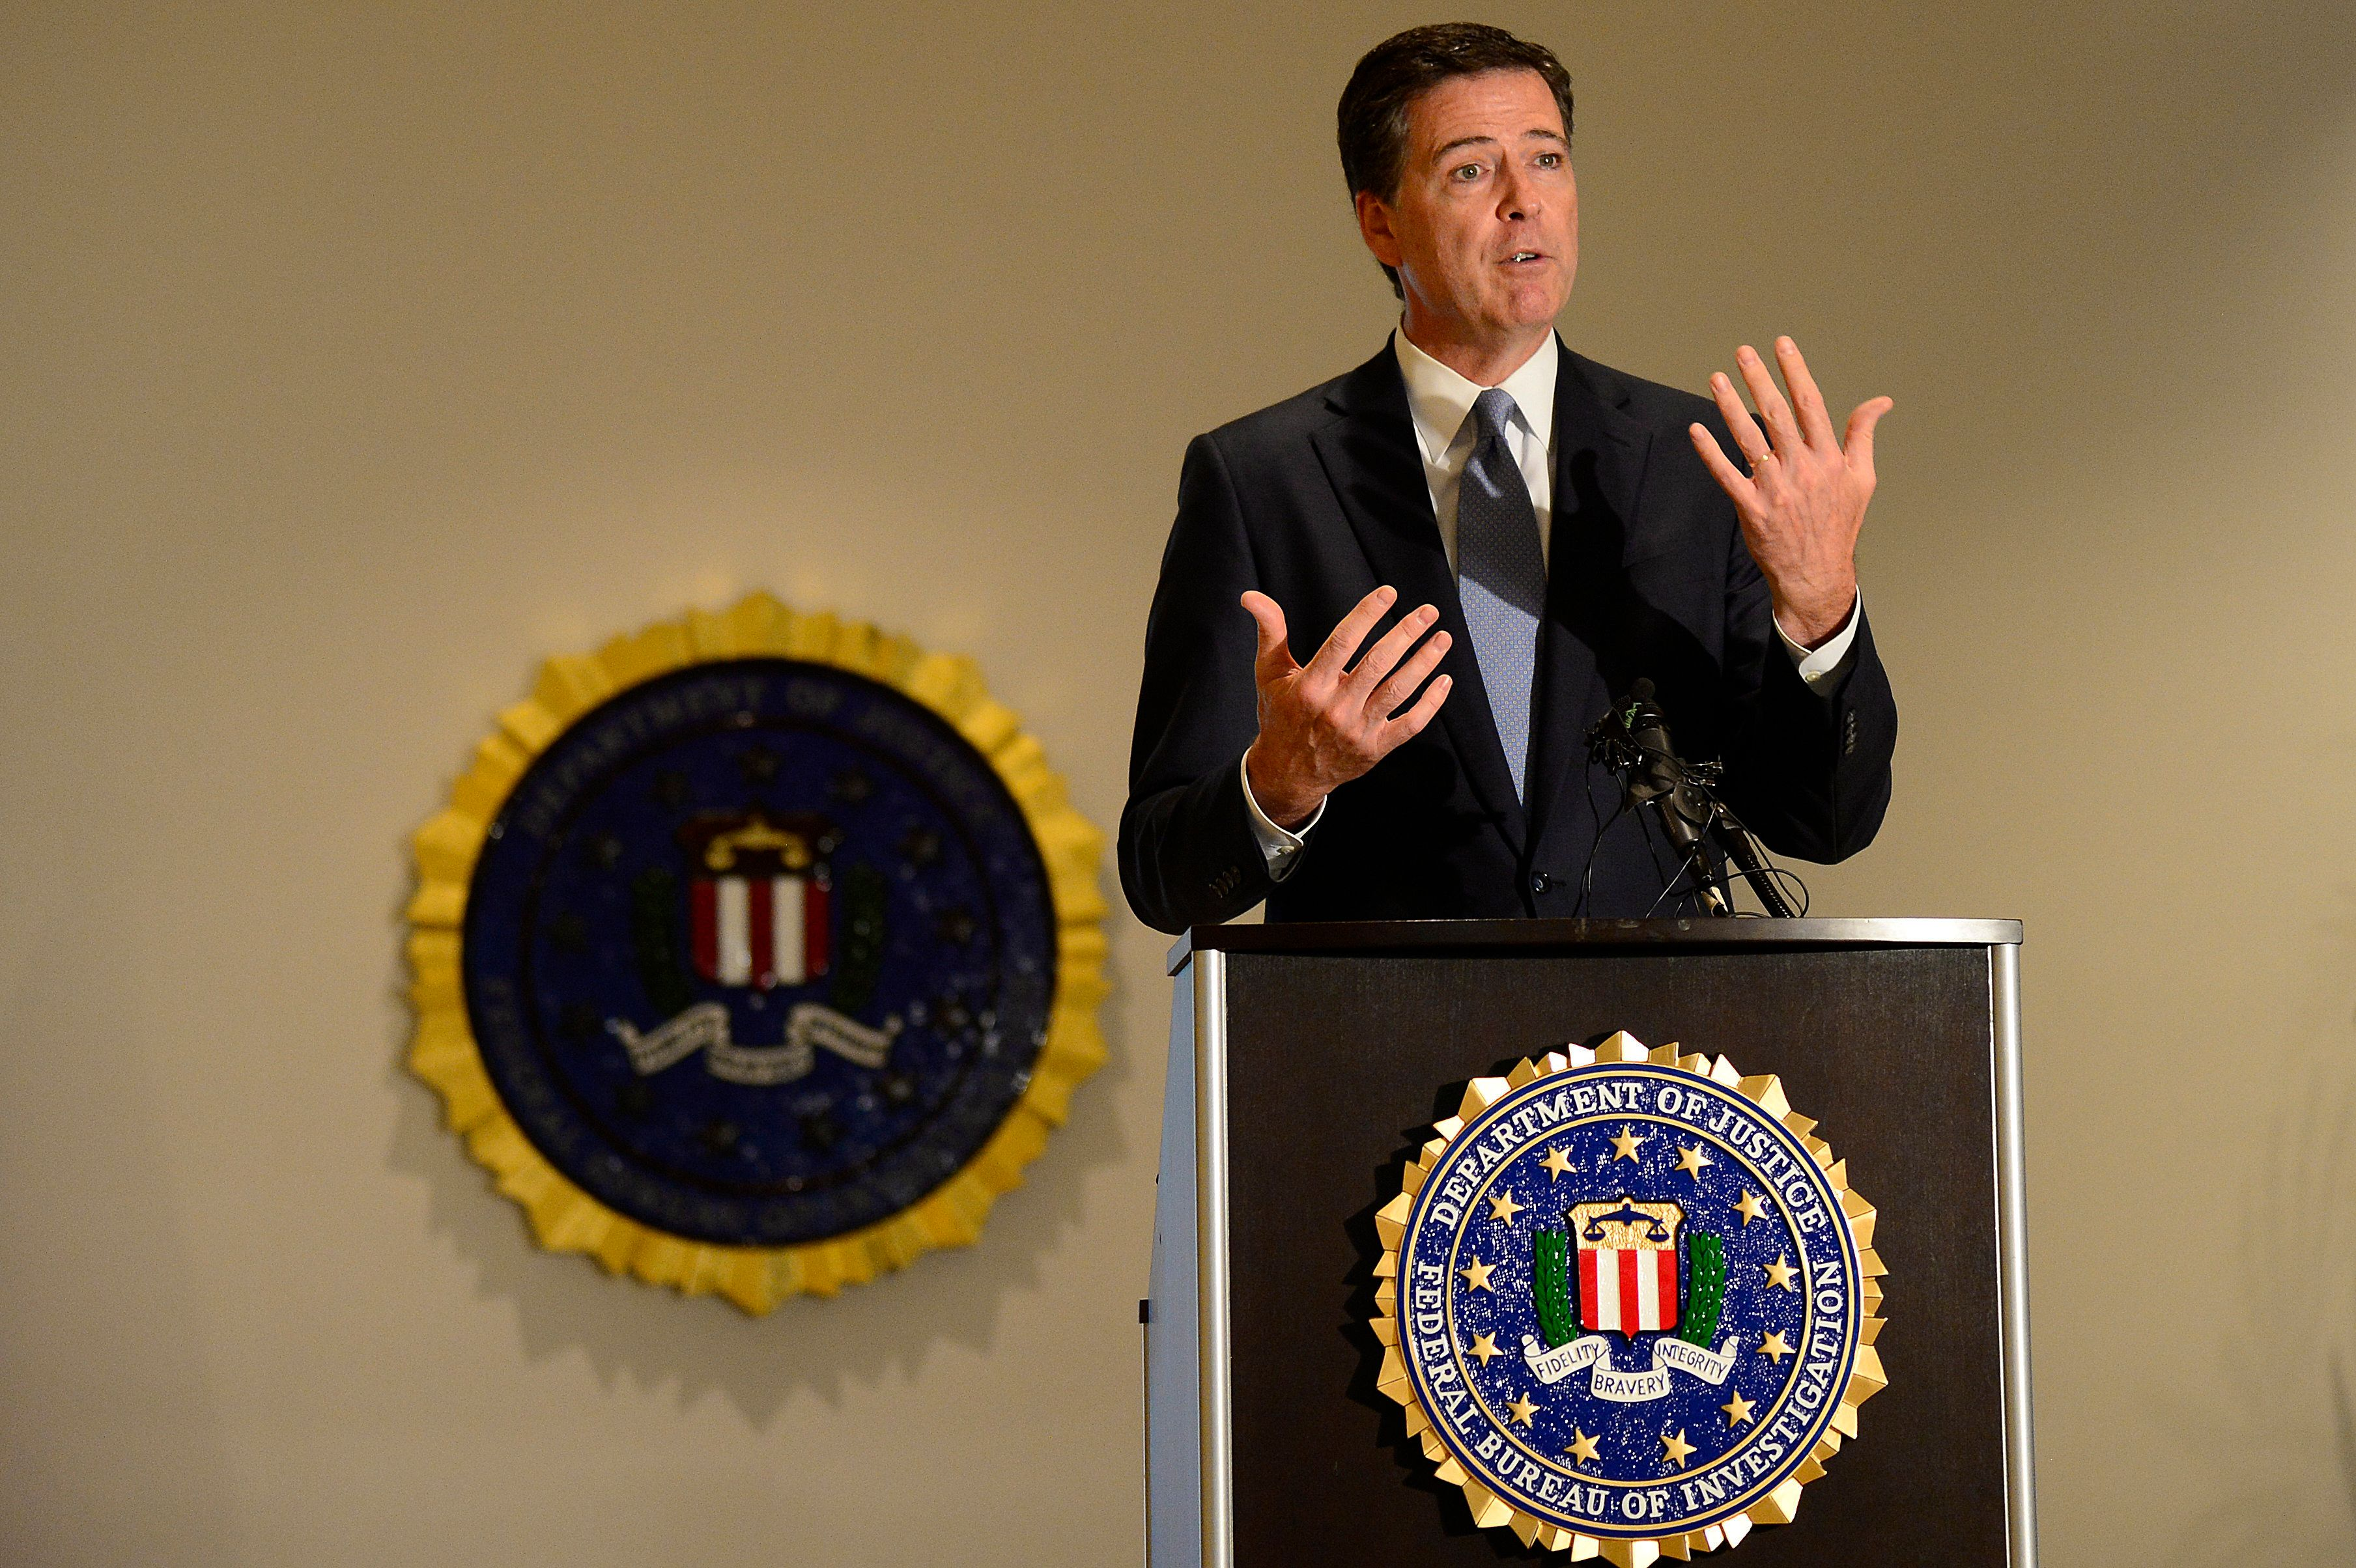 The Justice Department's internal watchdog found that former FBI Director James Comey broke FBI and DOJ rules in hisdec